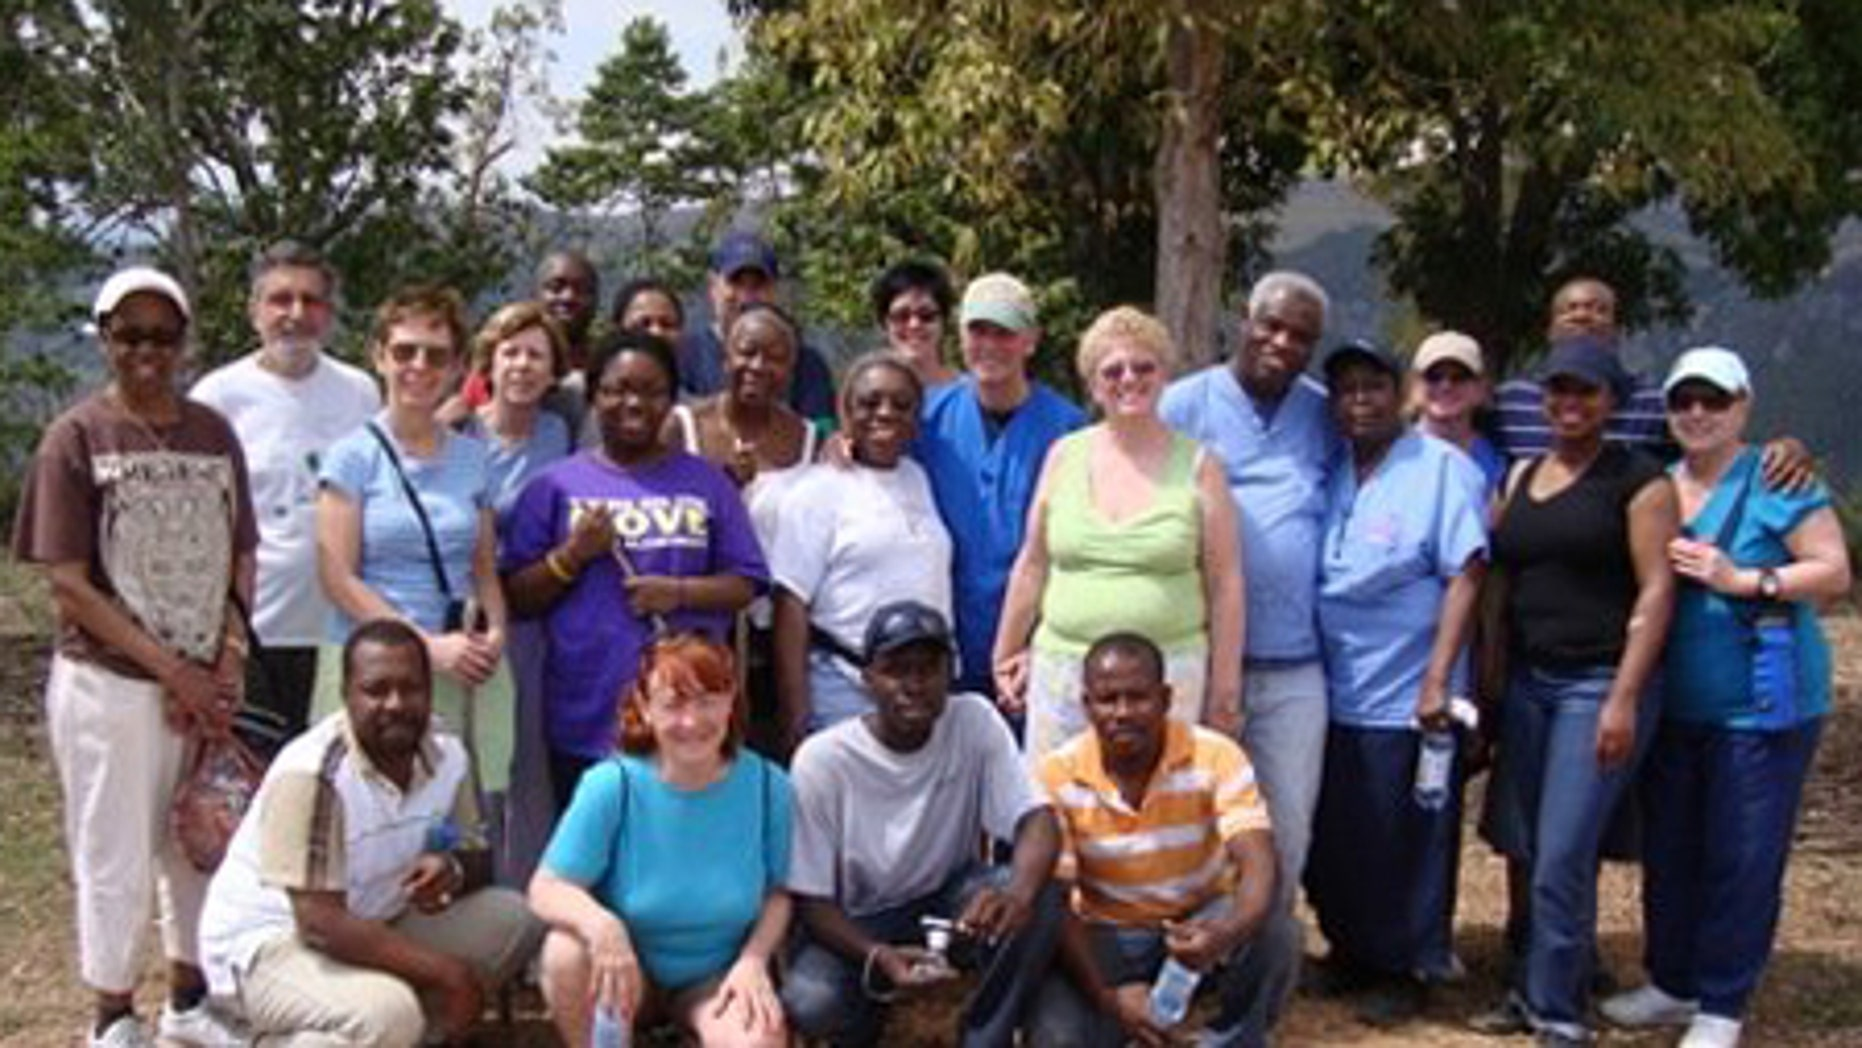 Yamilee Bazile, second row, third from left, is seen here in March 2009 on a Dental Medical Mission in Haiti organized by several New Jersey parishes.